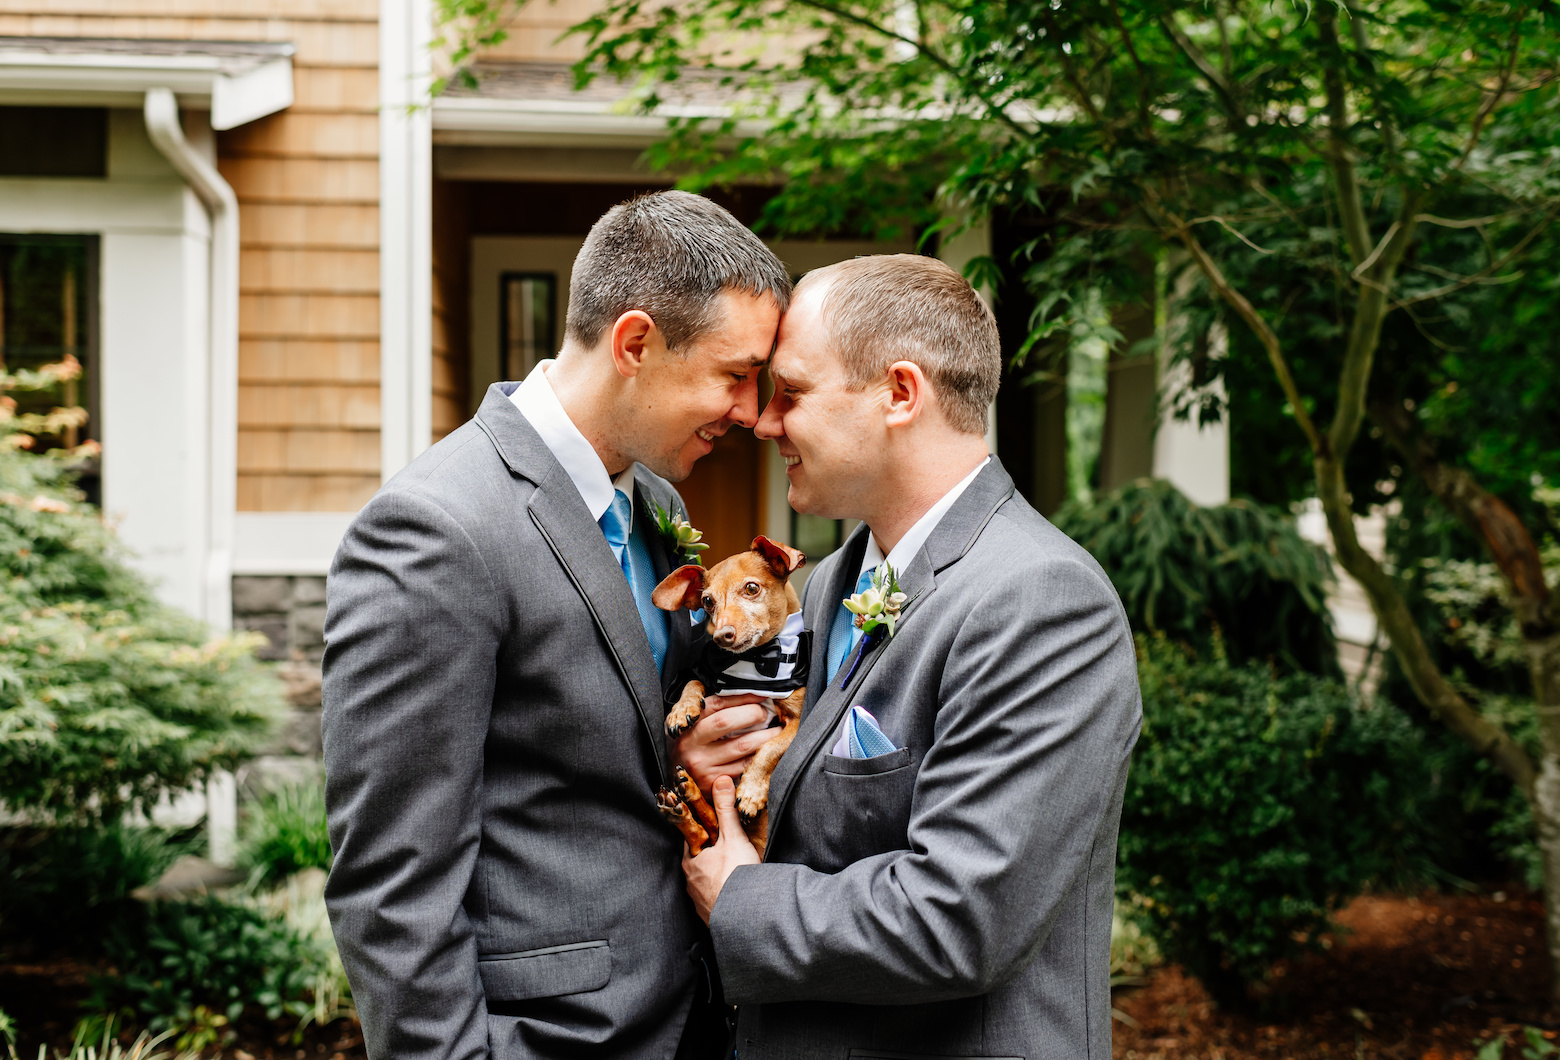 Seattle Wedding with Scottish Traditions